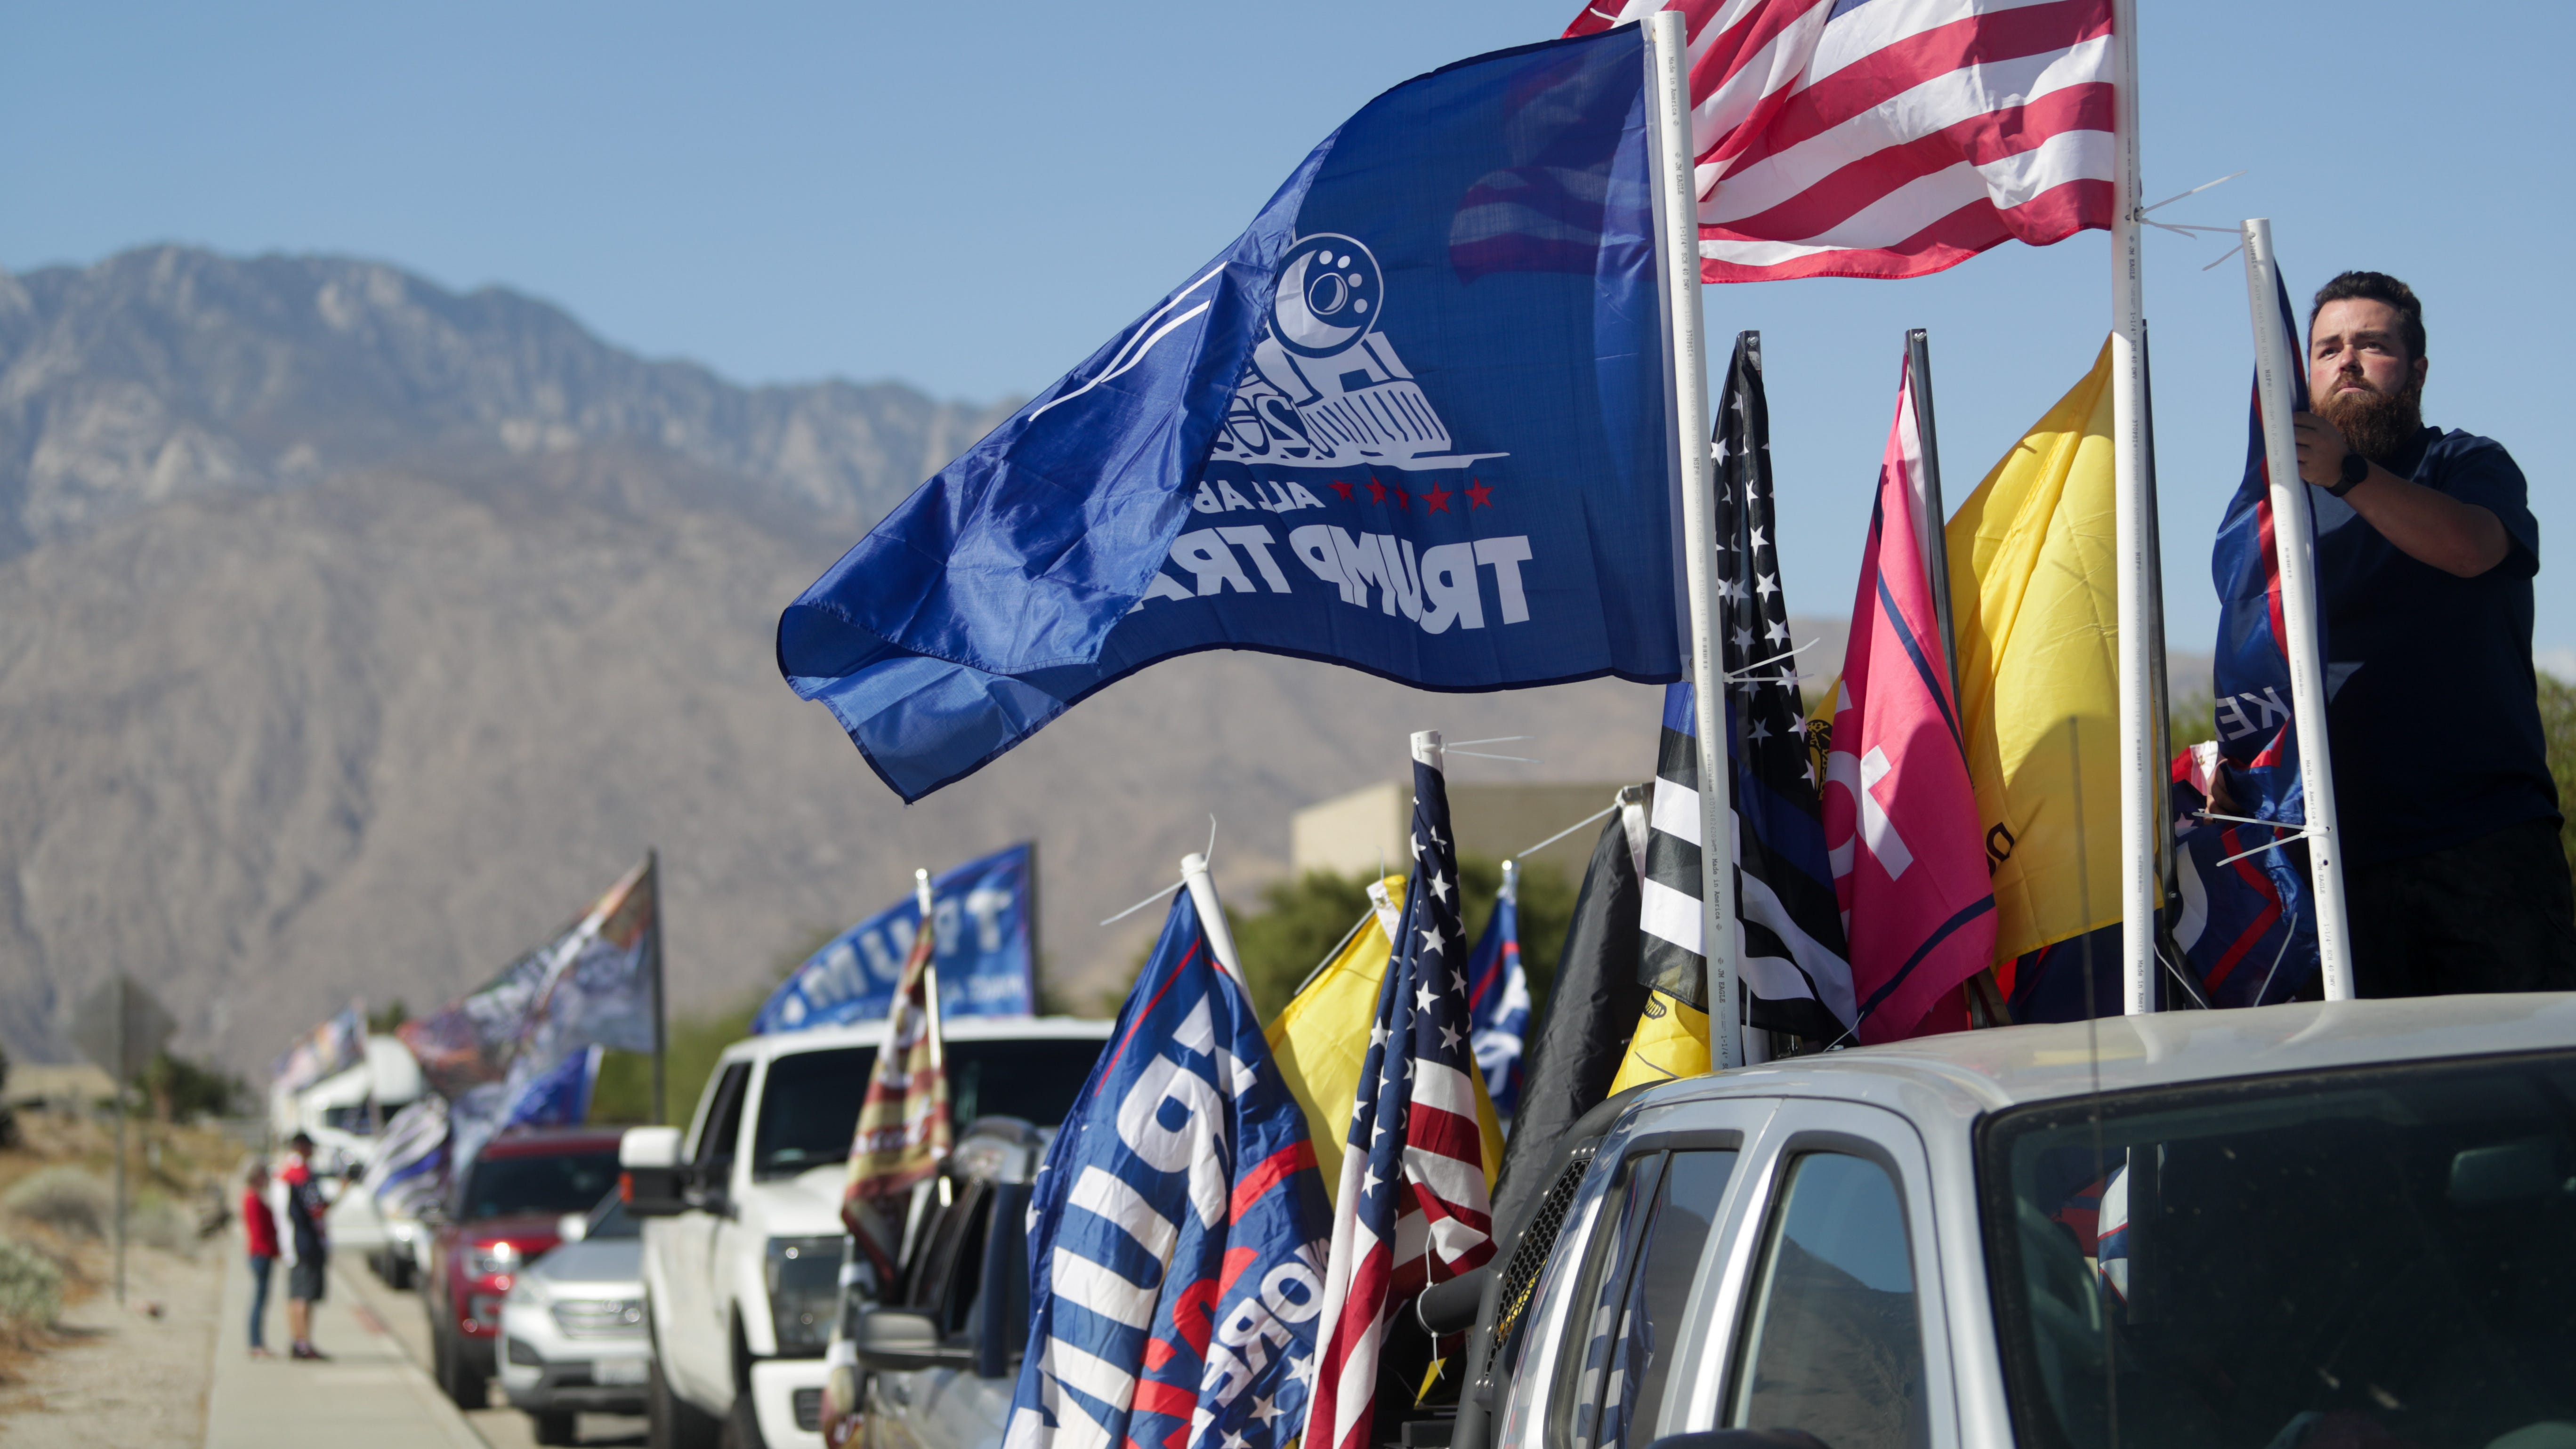 Trump supporters rally in Palm Springs, Coachella Valley